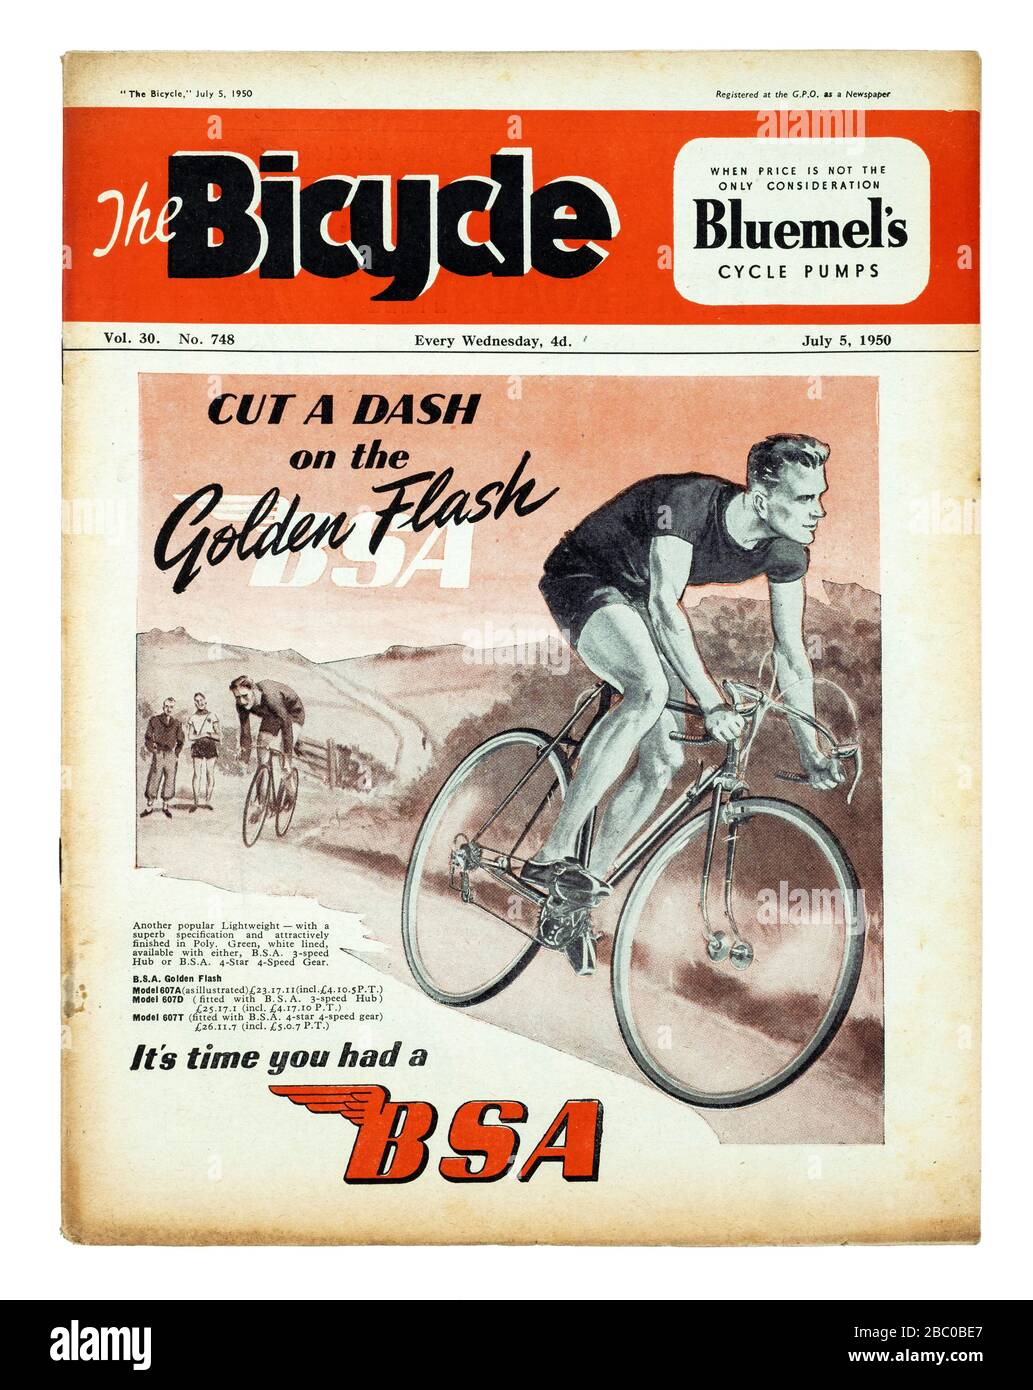 "Revista británica de ciclismo ""The Bicycle"" de julio de 1950 Foto de stock"